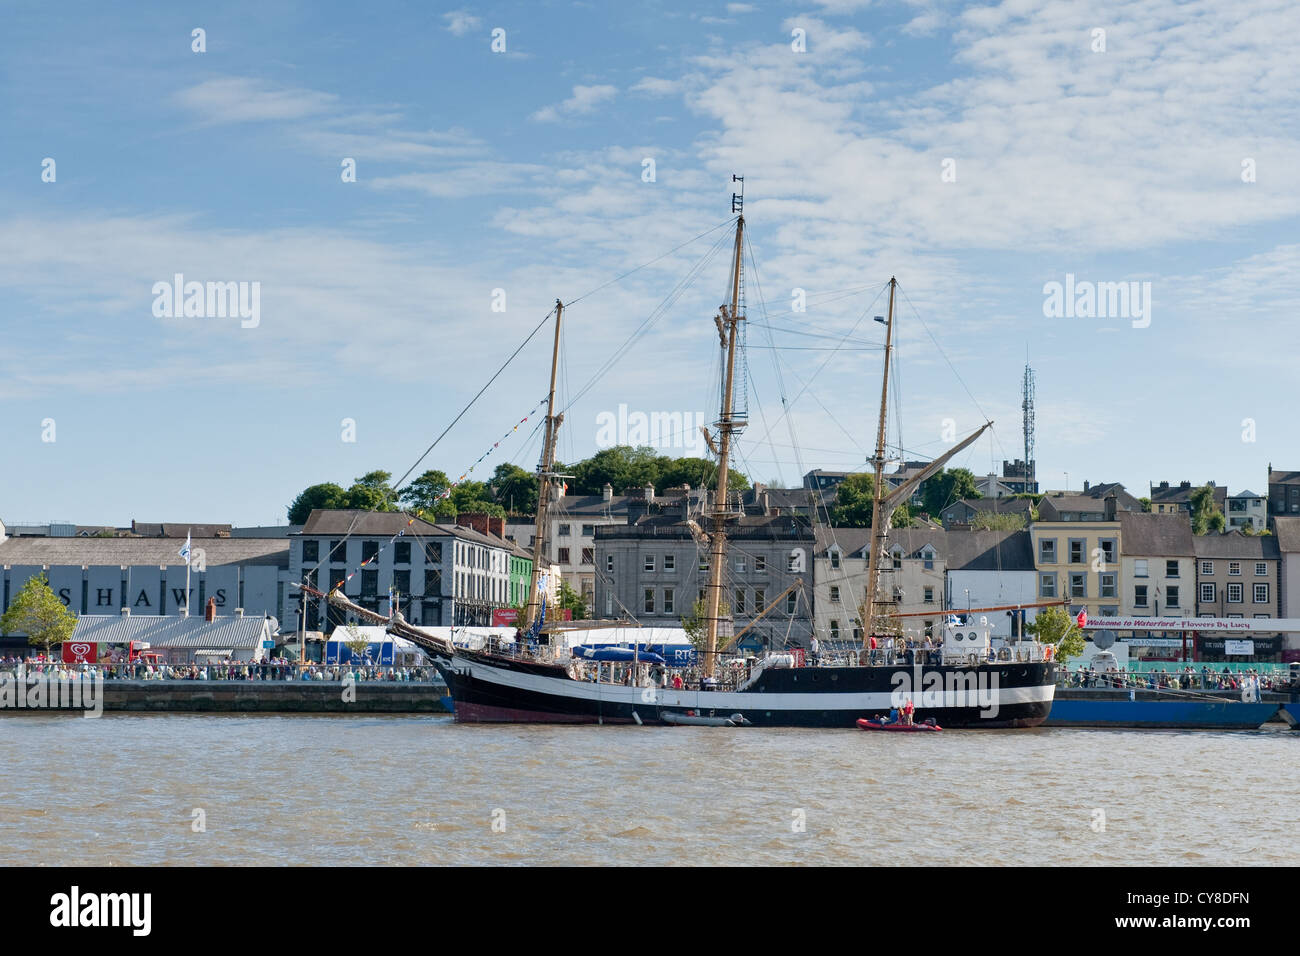 Tall ships moored along quayside, Waterford, Ireland - Stock Image